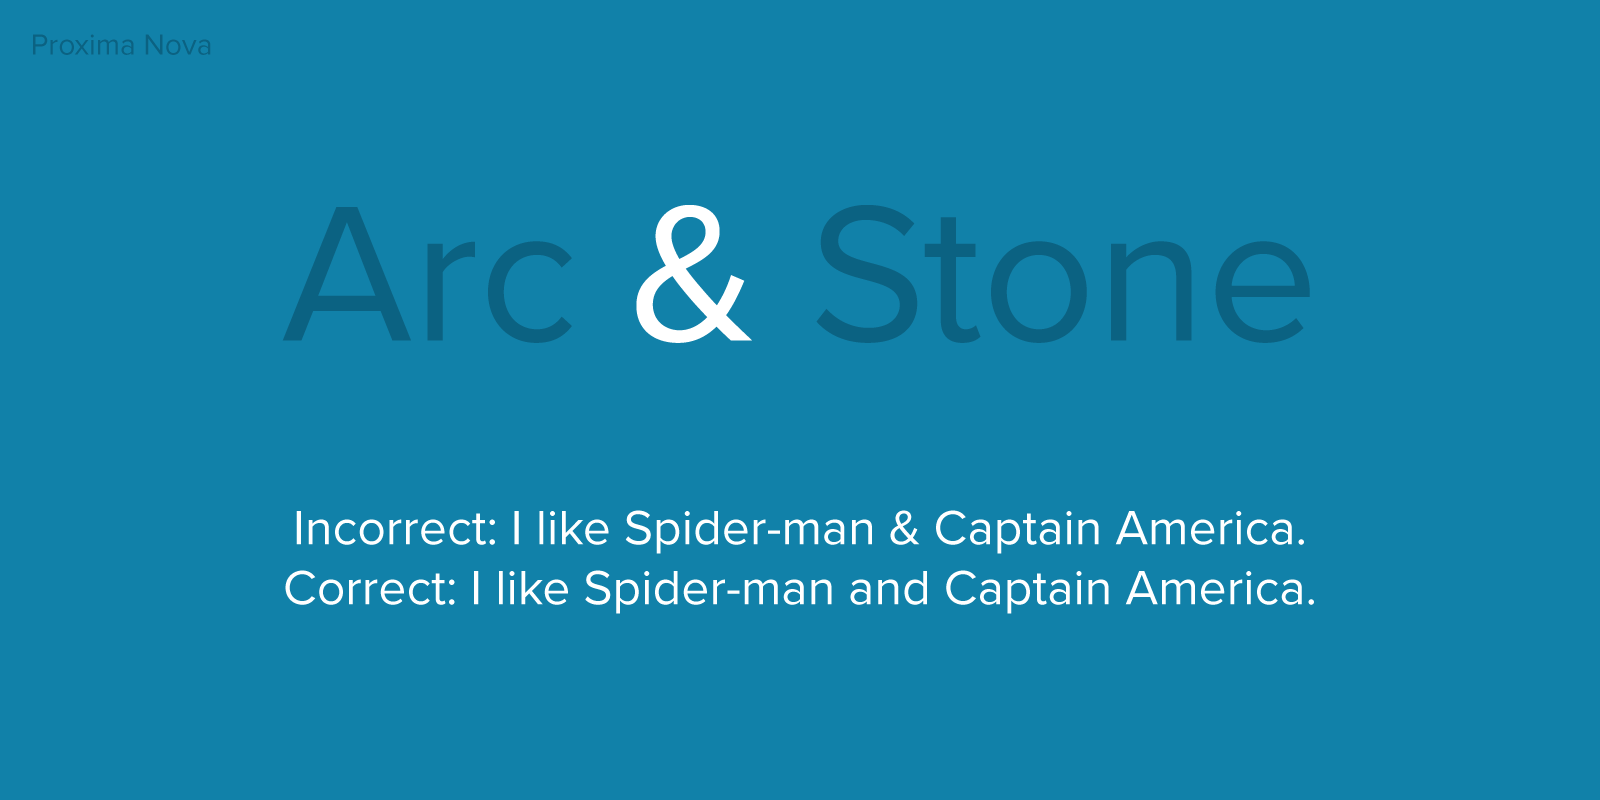 Ampersand is only used for titles and names, never in a sentence. Ex. Incorrect: I like Spider-man & Captain America. Correct: I like Spider-man and Captain America.